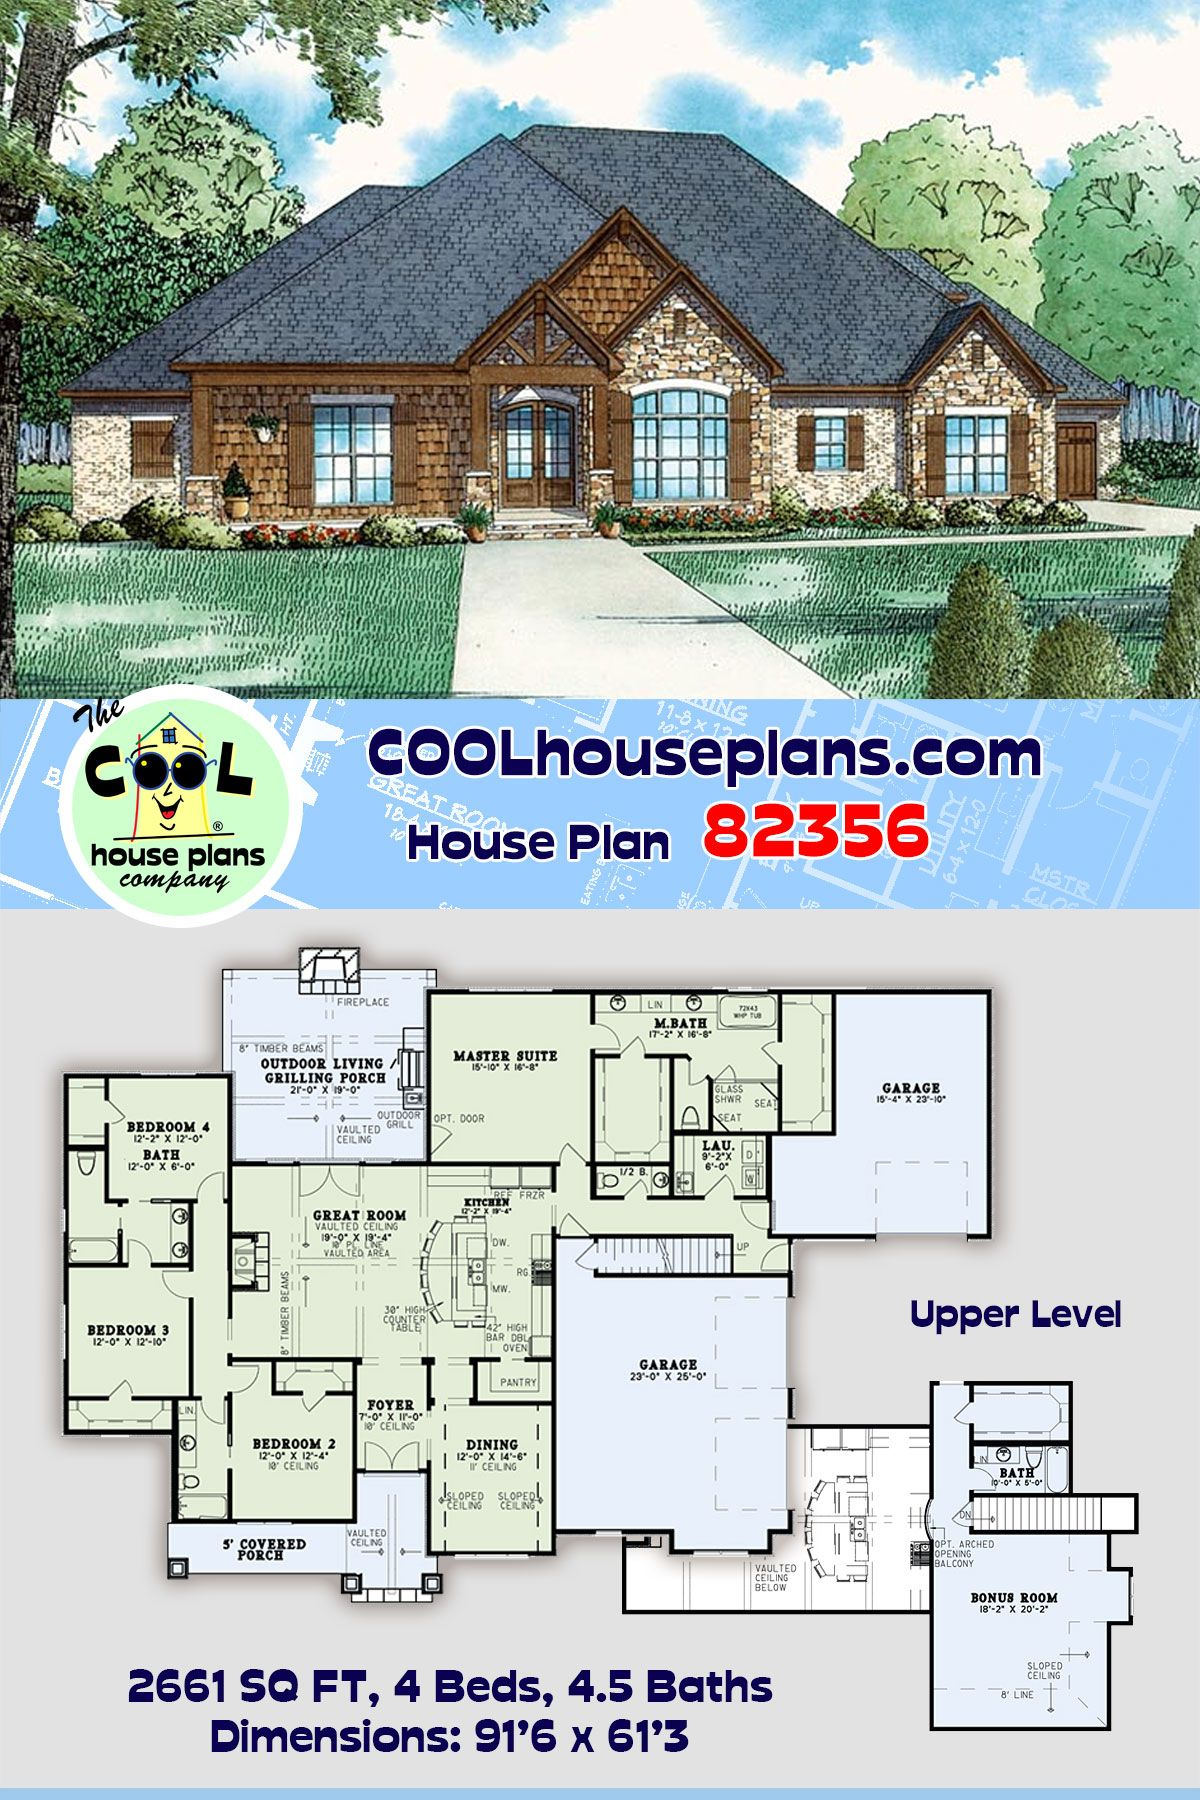 European Style House Plan 82356 With 4 Bed 5 Bath 3 Car Garage House Plans European Style Homes French House Plans